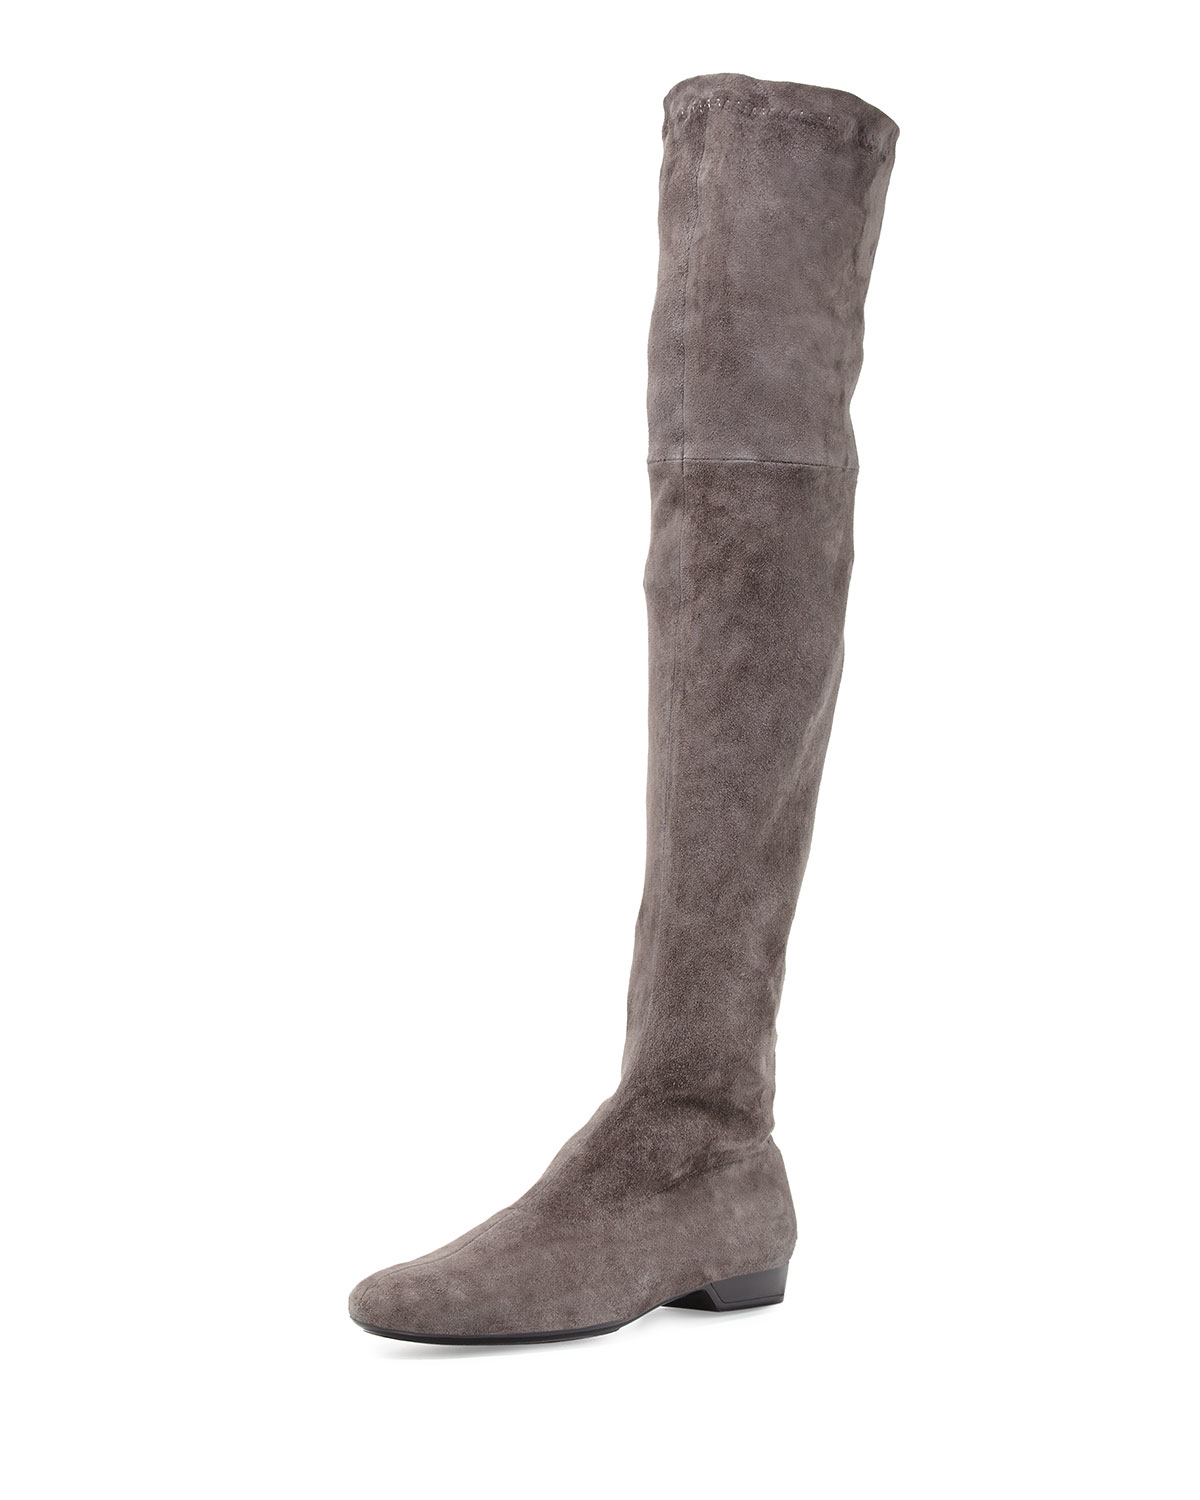 7257b9fd5ff Lyst - Robert Clergerie Fissaj Stretch Suede Over-the-knee Boot in Gray